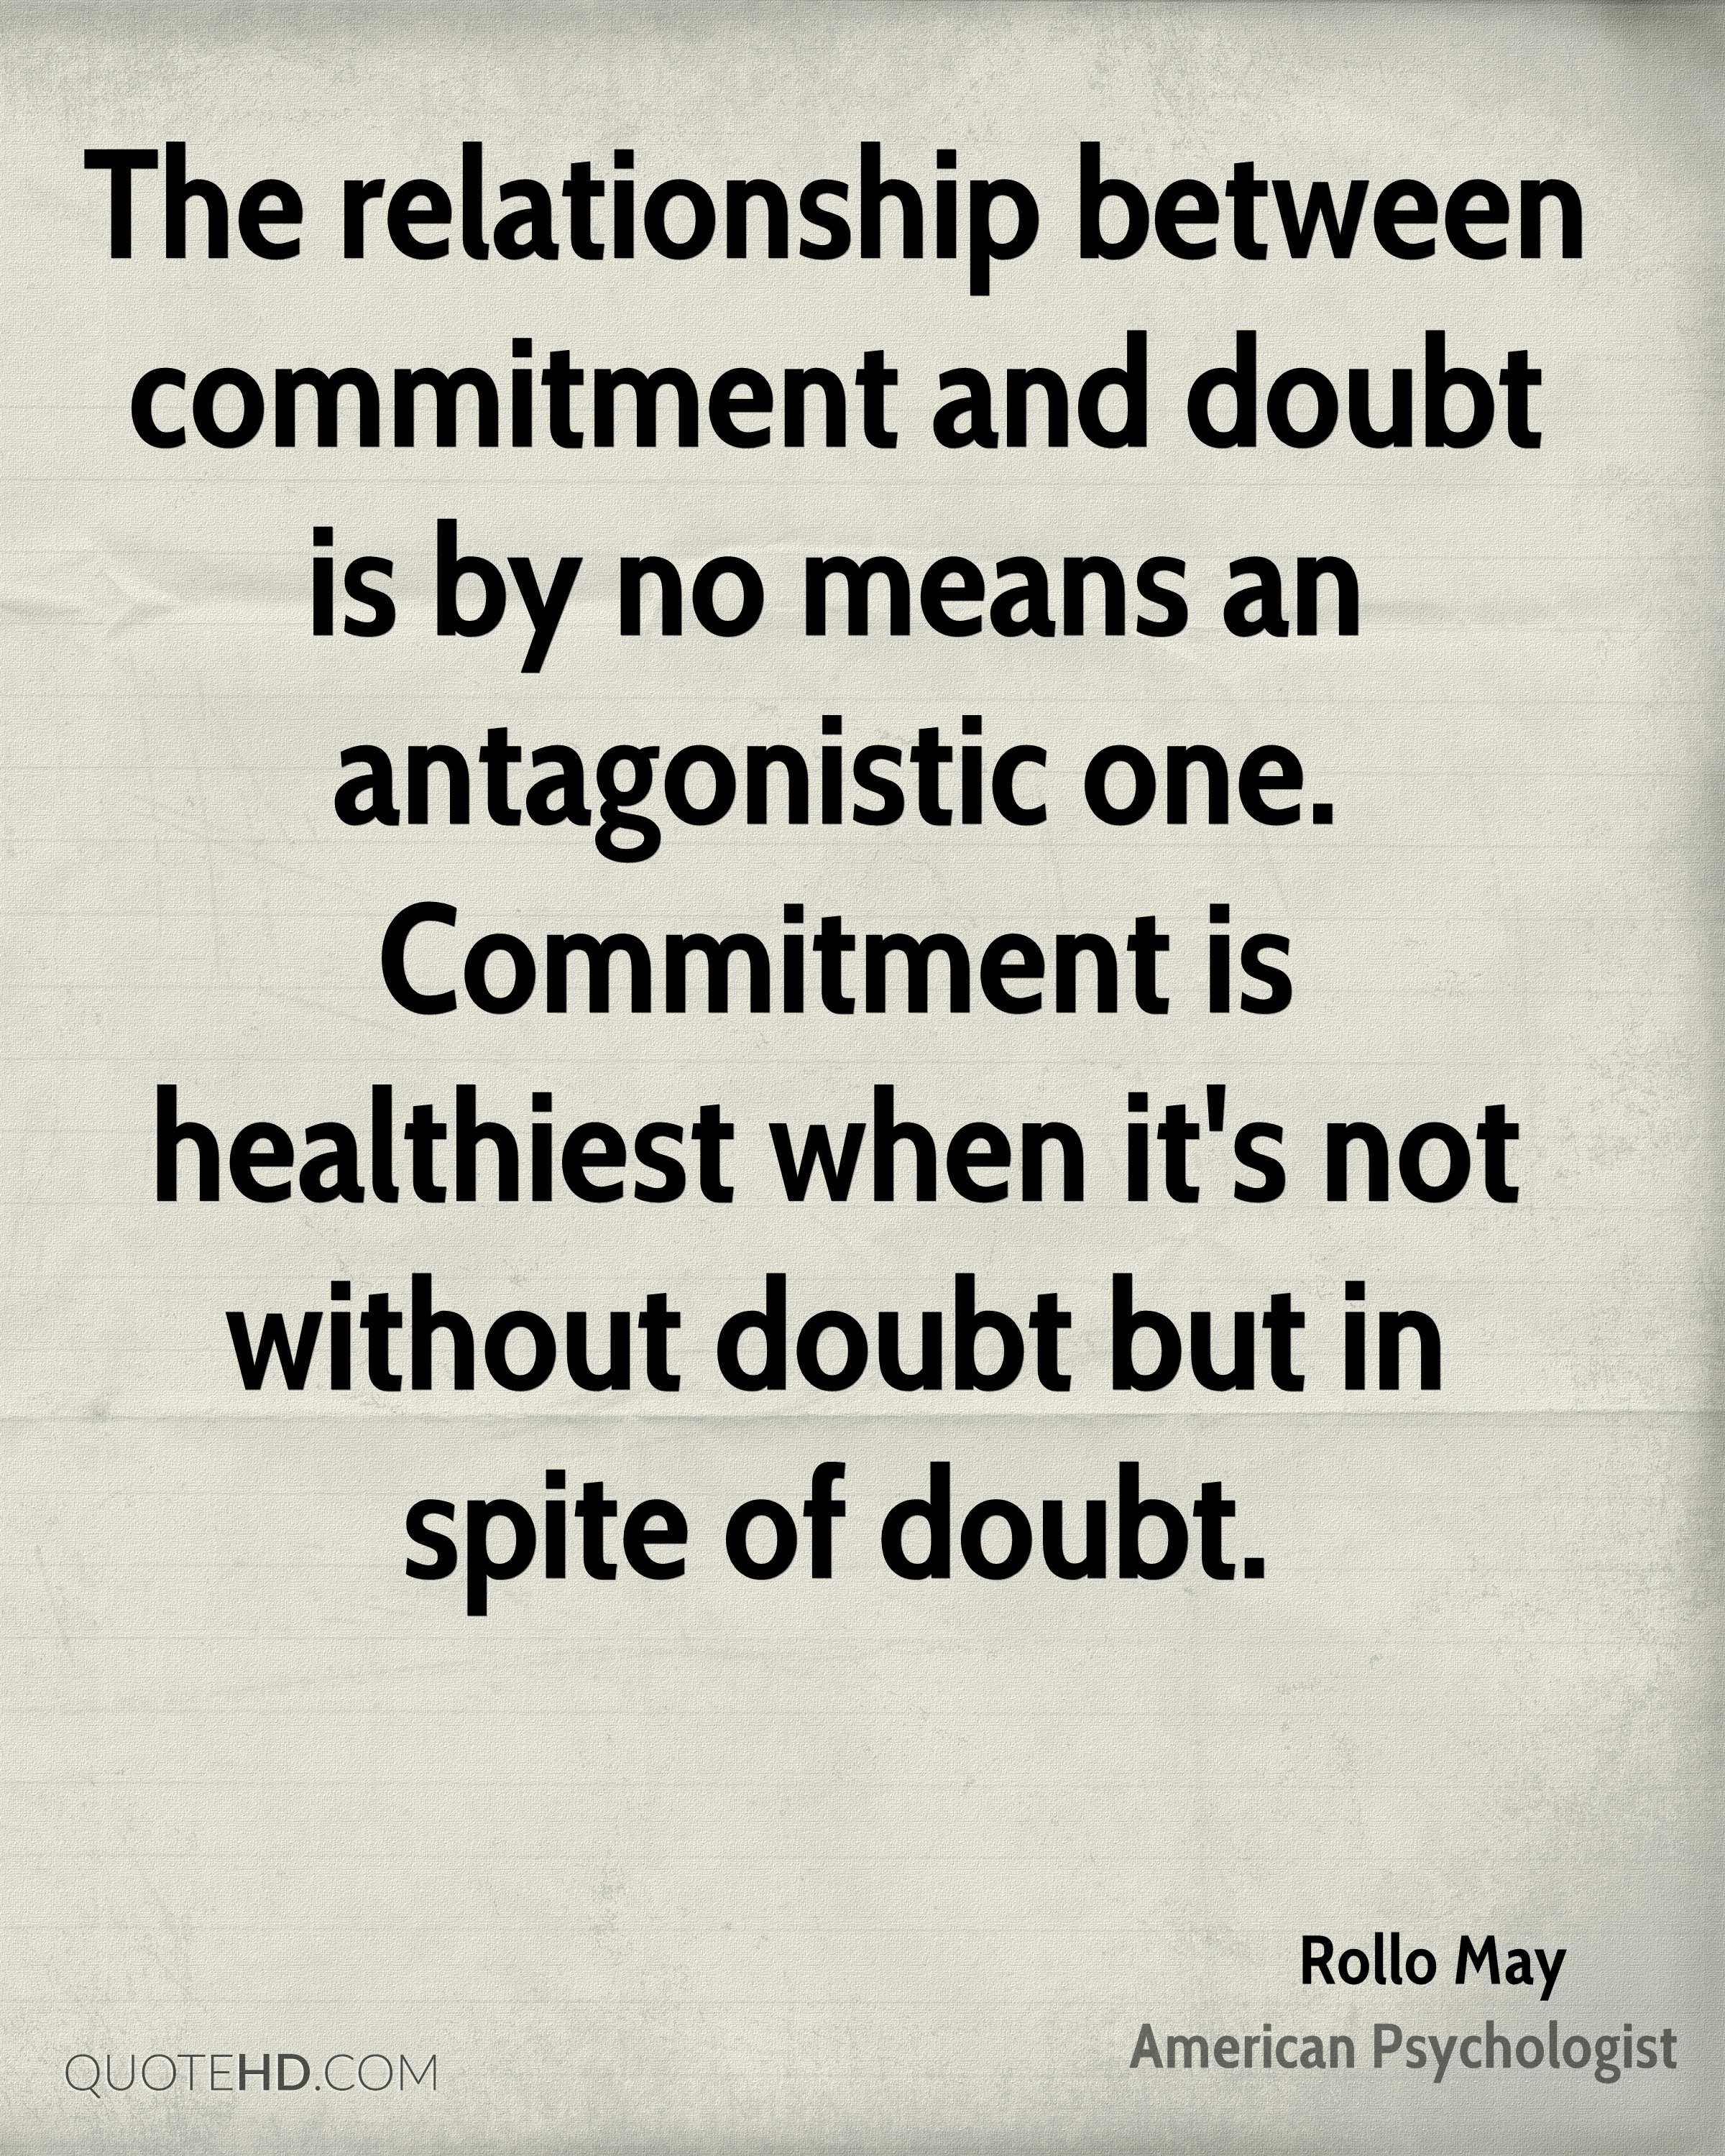 difference between dating and committed relationship quotes